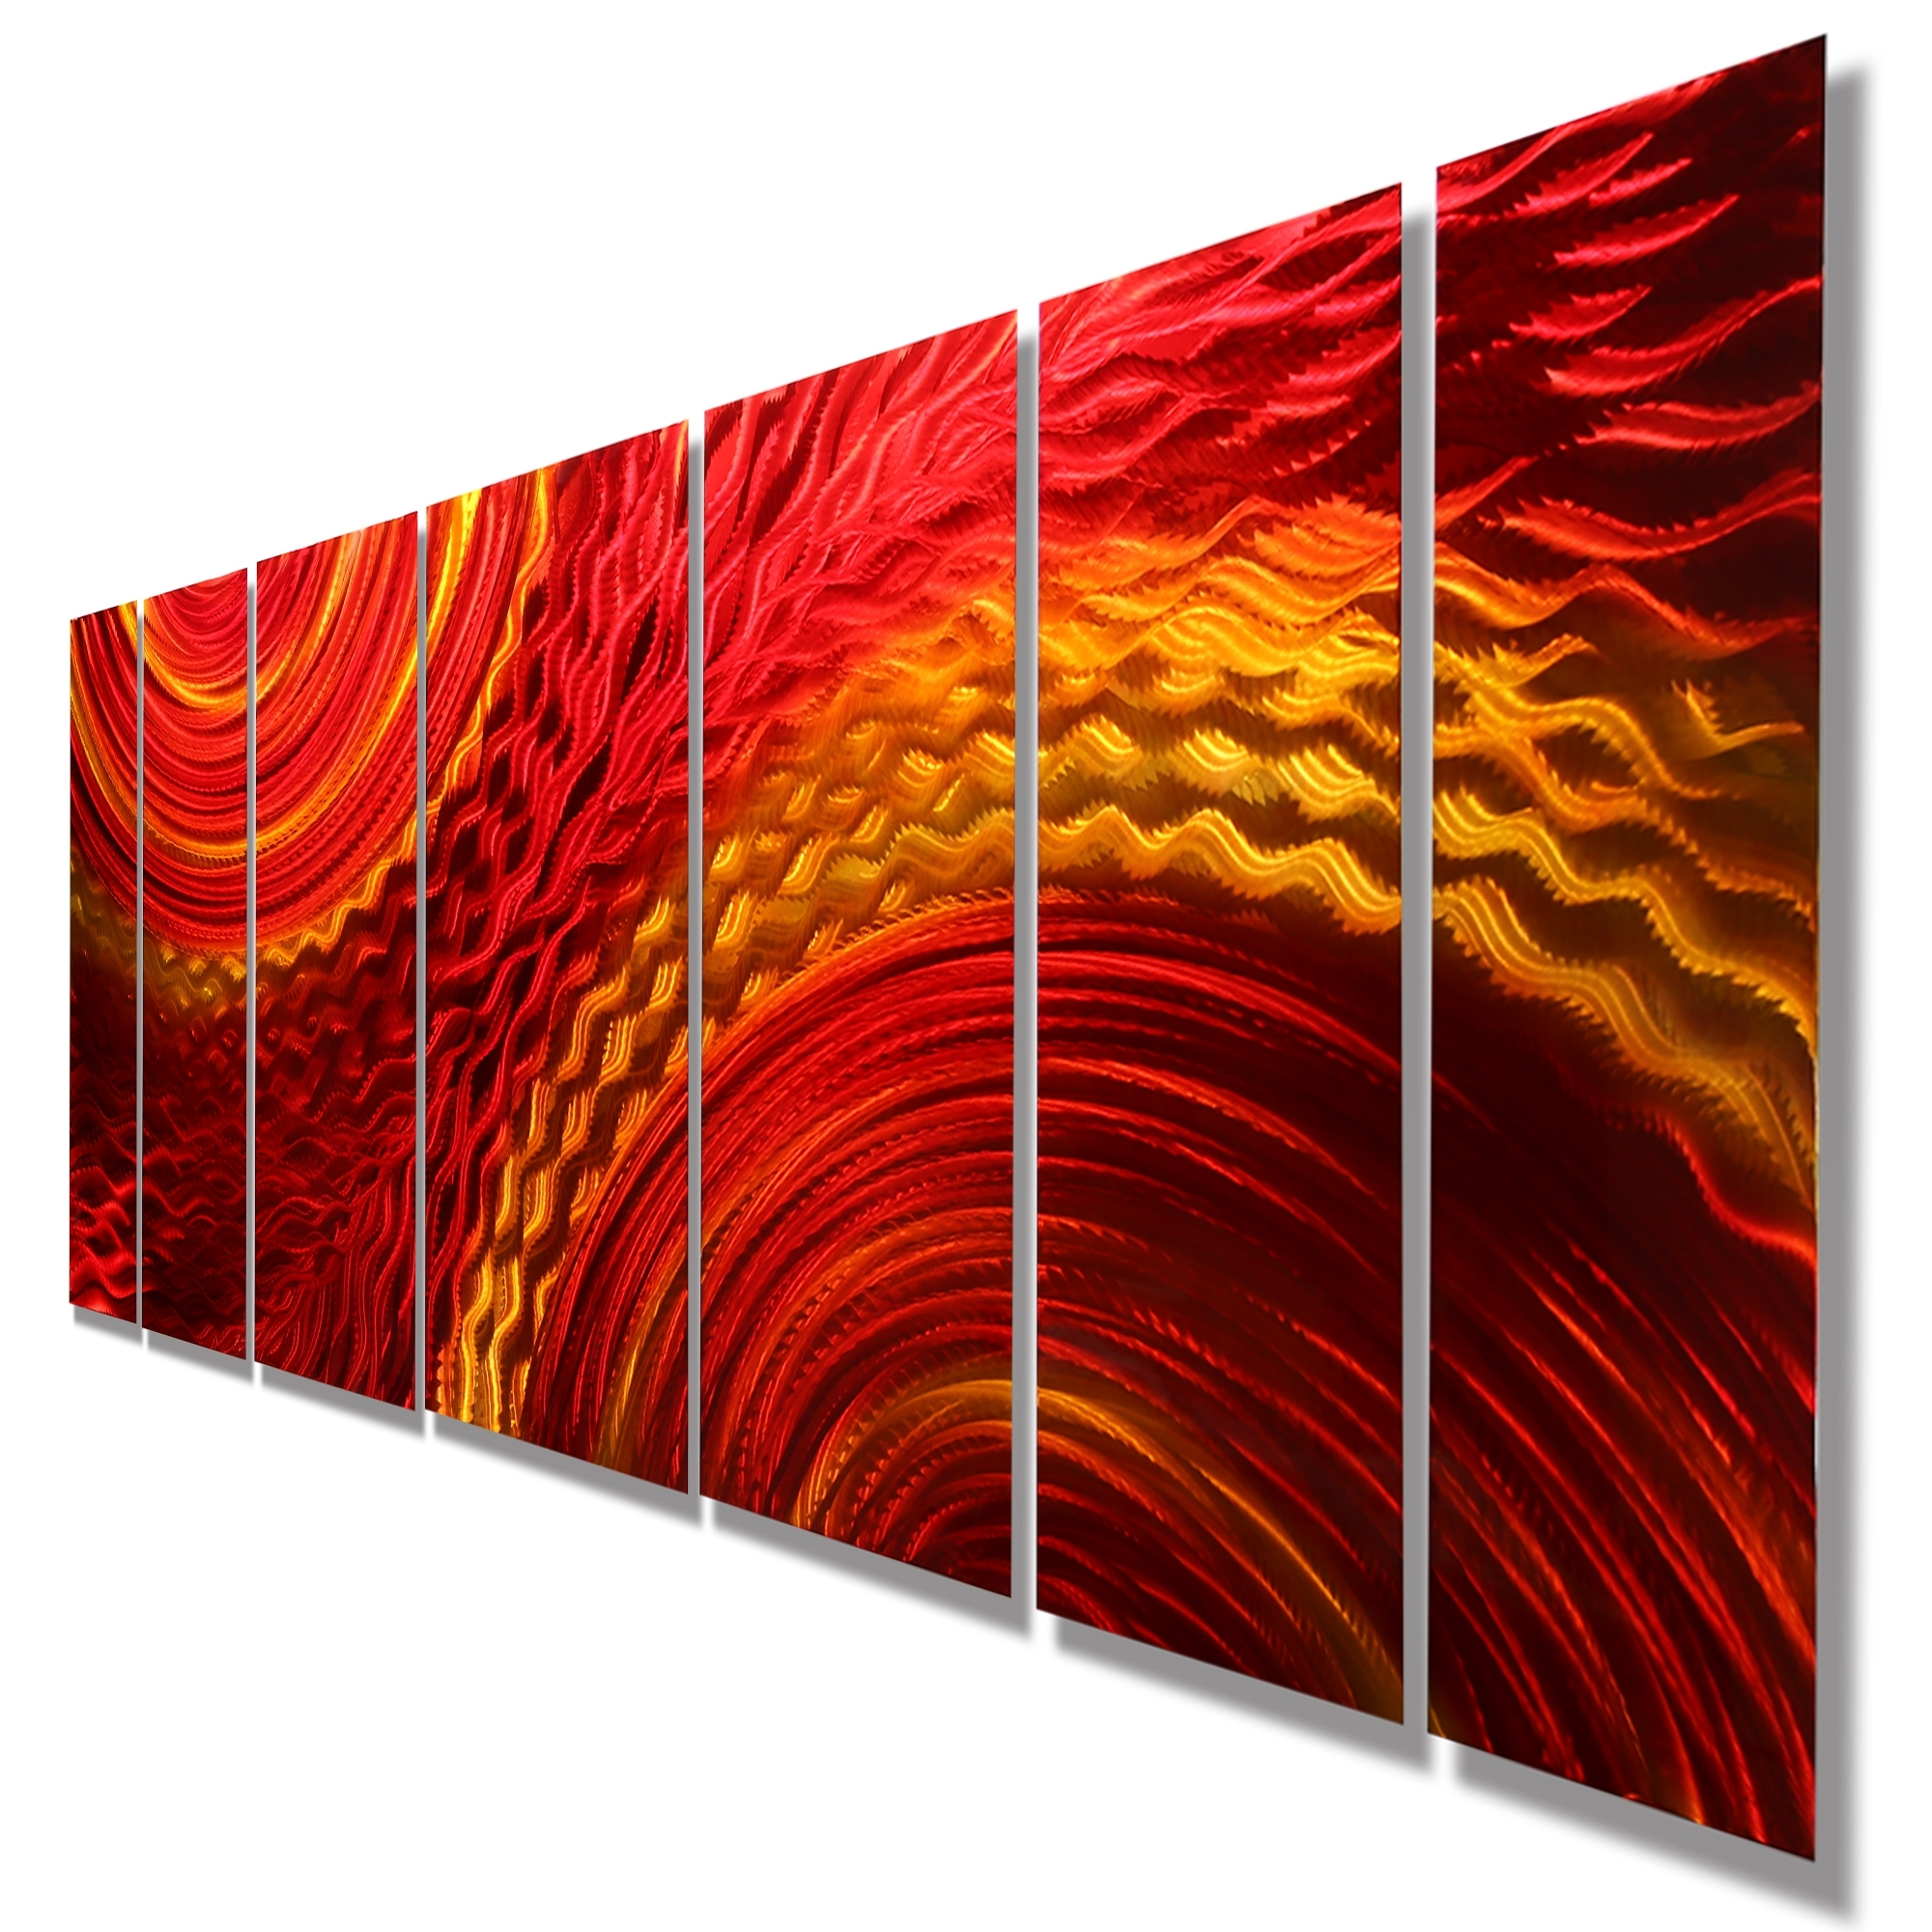 Home Decor: Alluring Abstract Metal Wall Art With Harvest Moods Xl Within 2017 Australian Abstract Wall Art (Gallery 5 of 20)